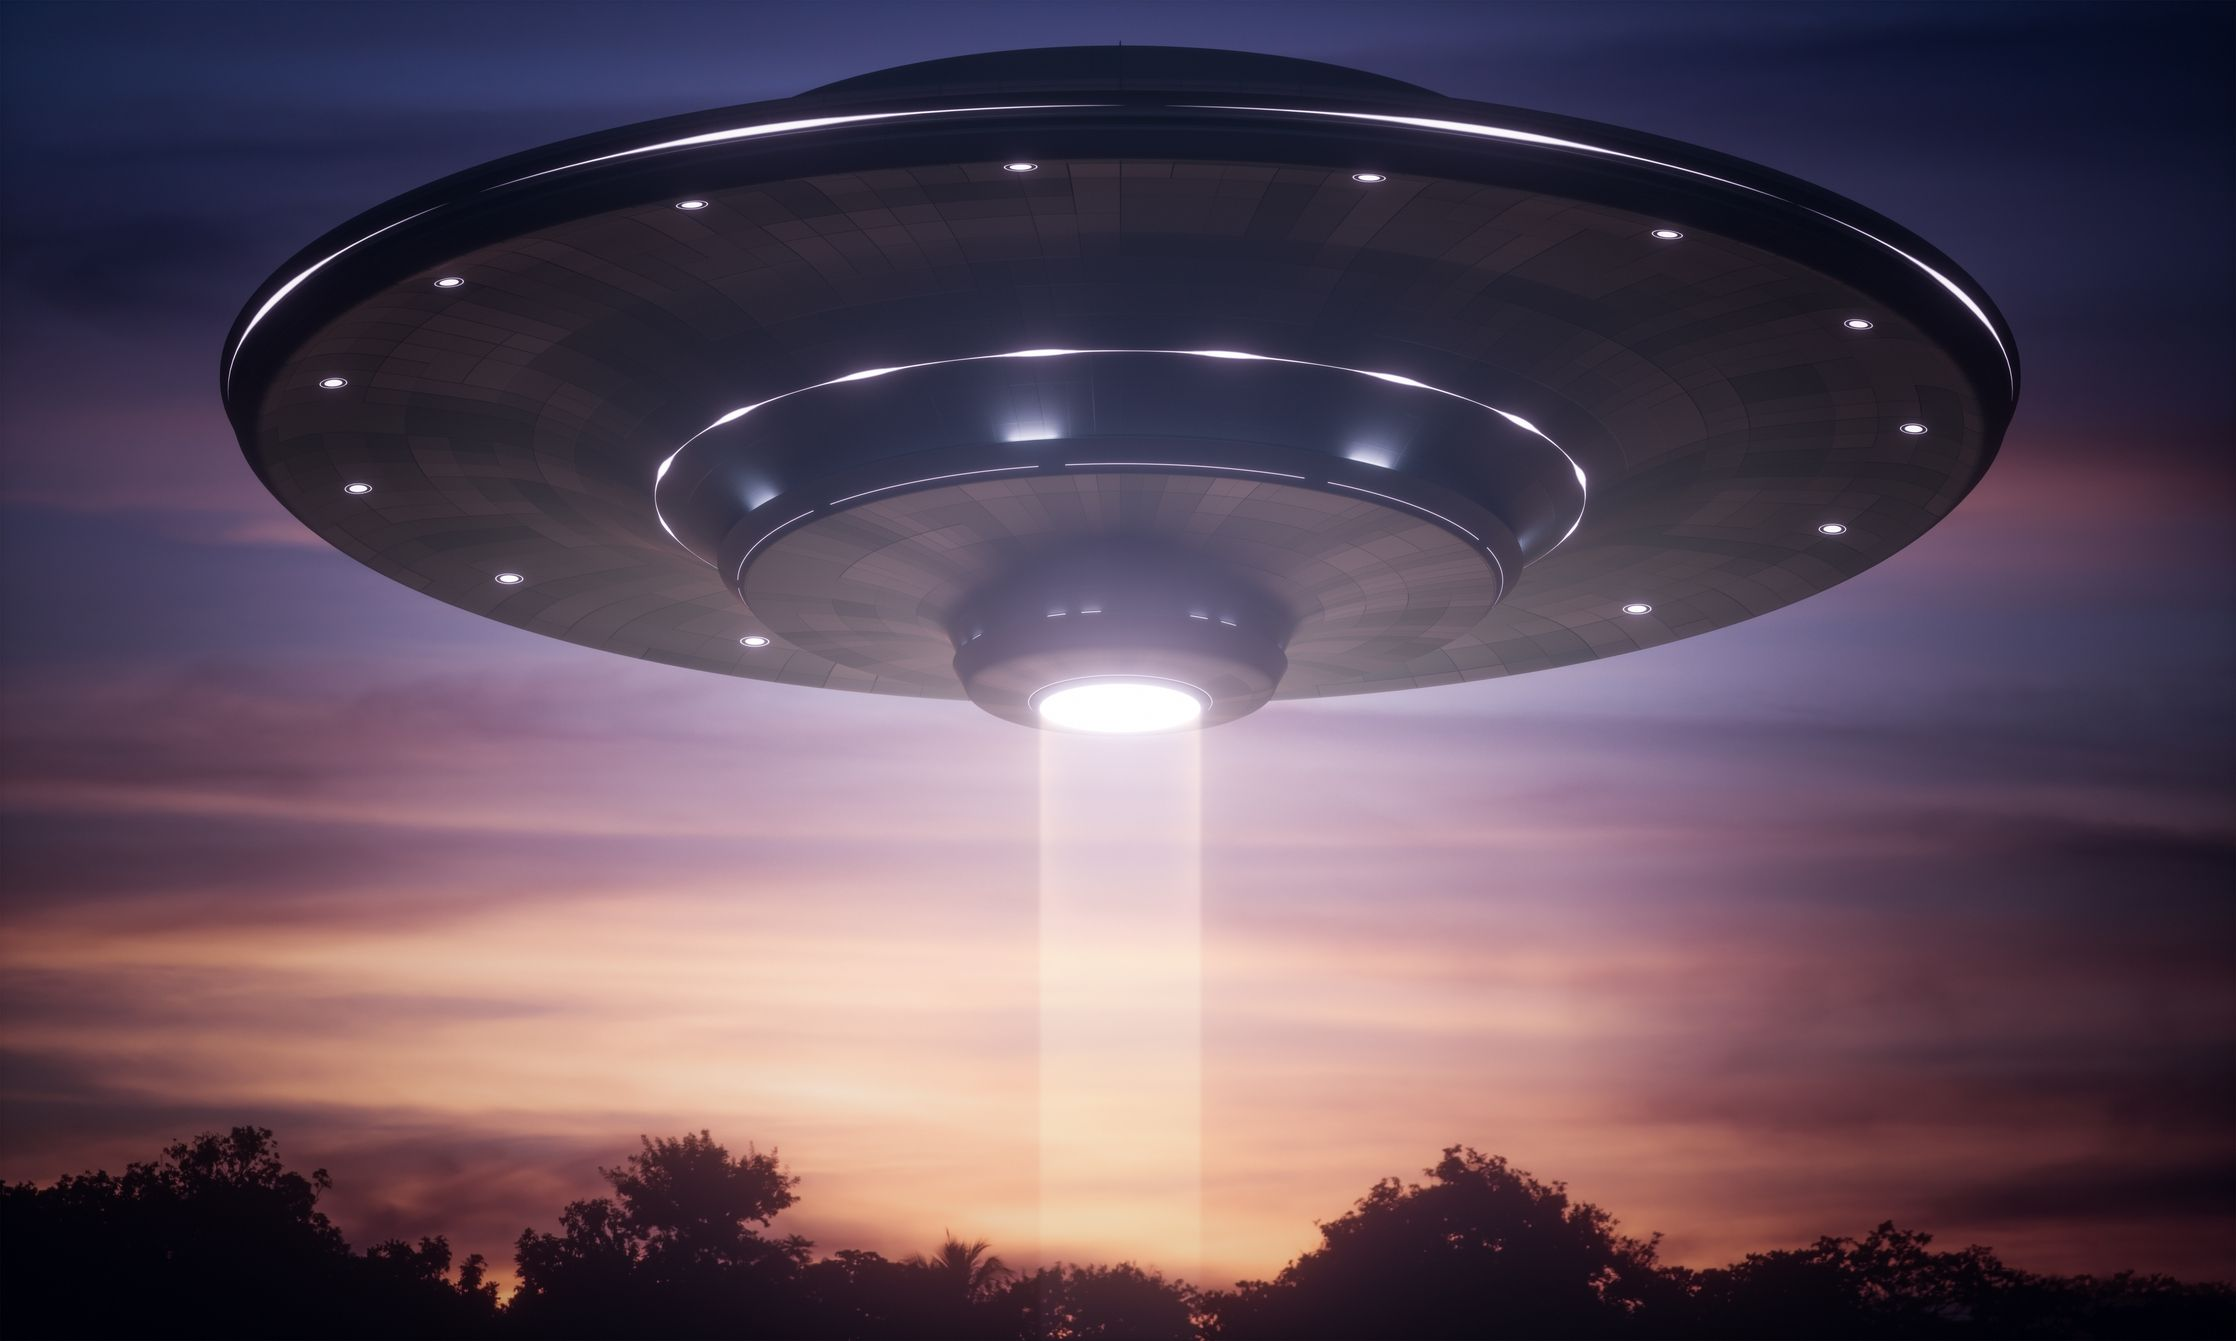 UFO VISITS USA, FRIENDLY THEY SAY.